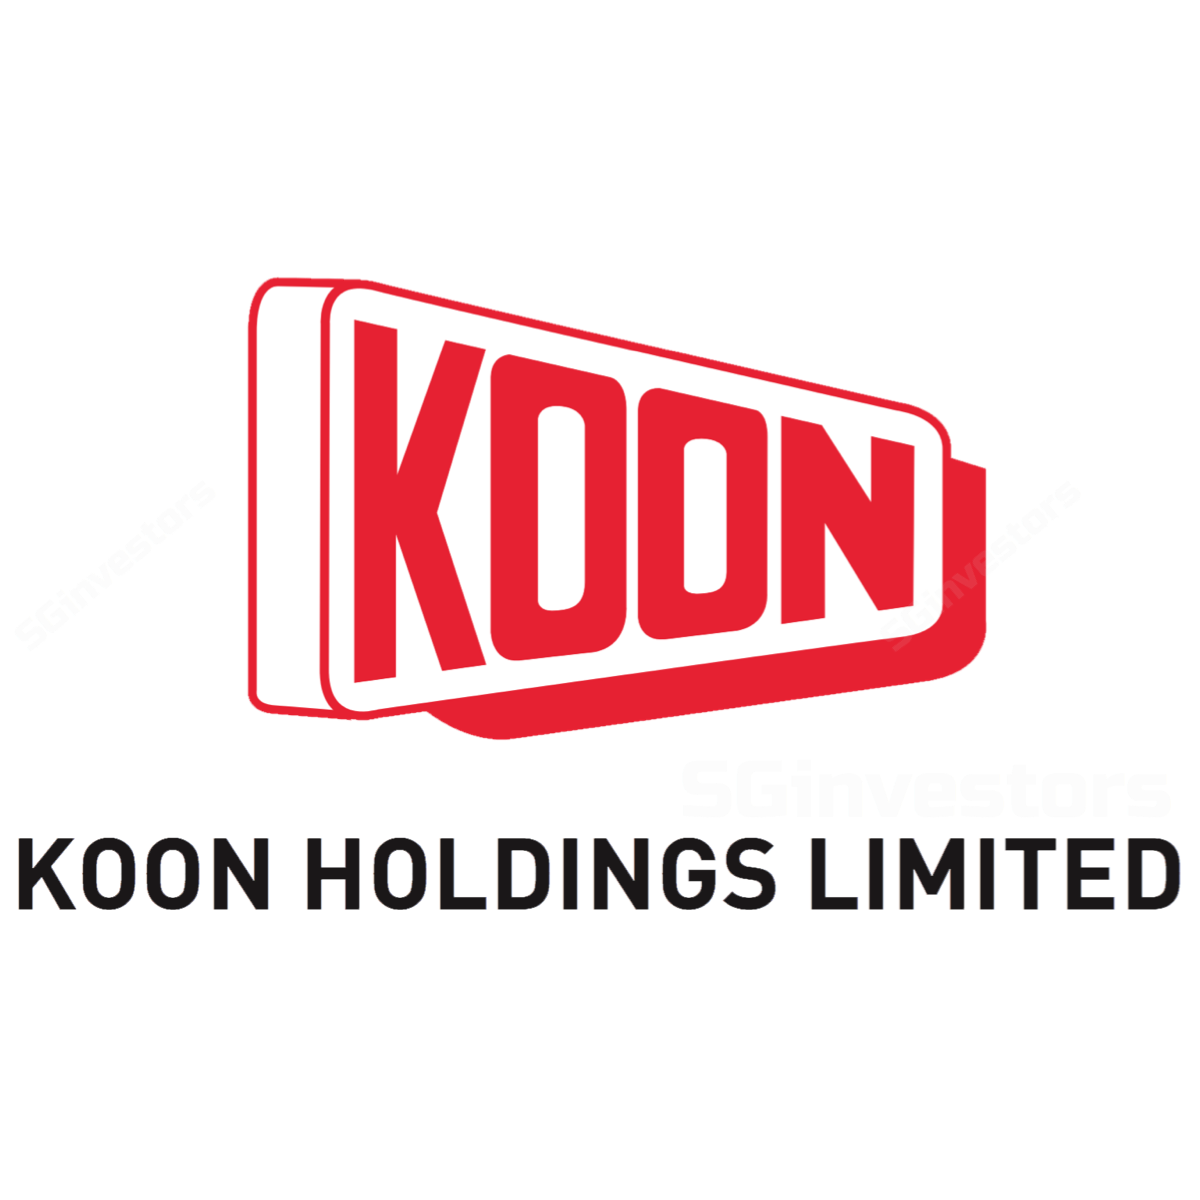 Limited stock png. Koon holdings info sgx